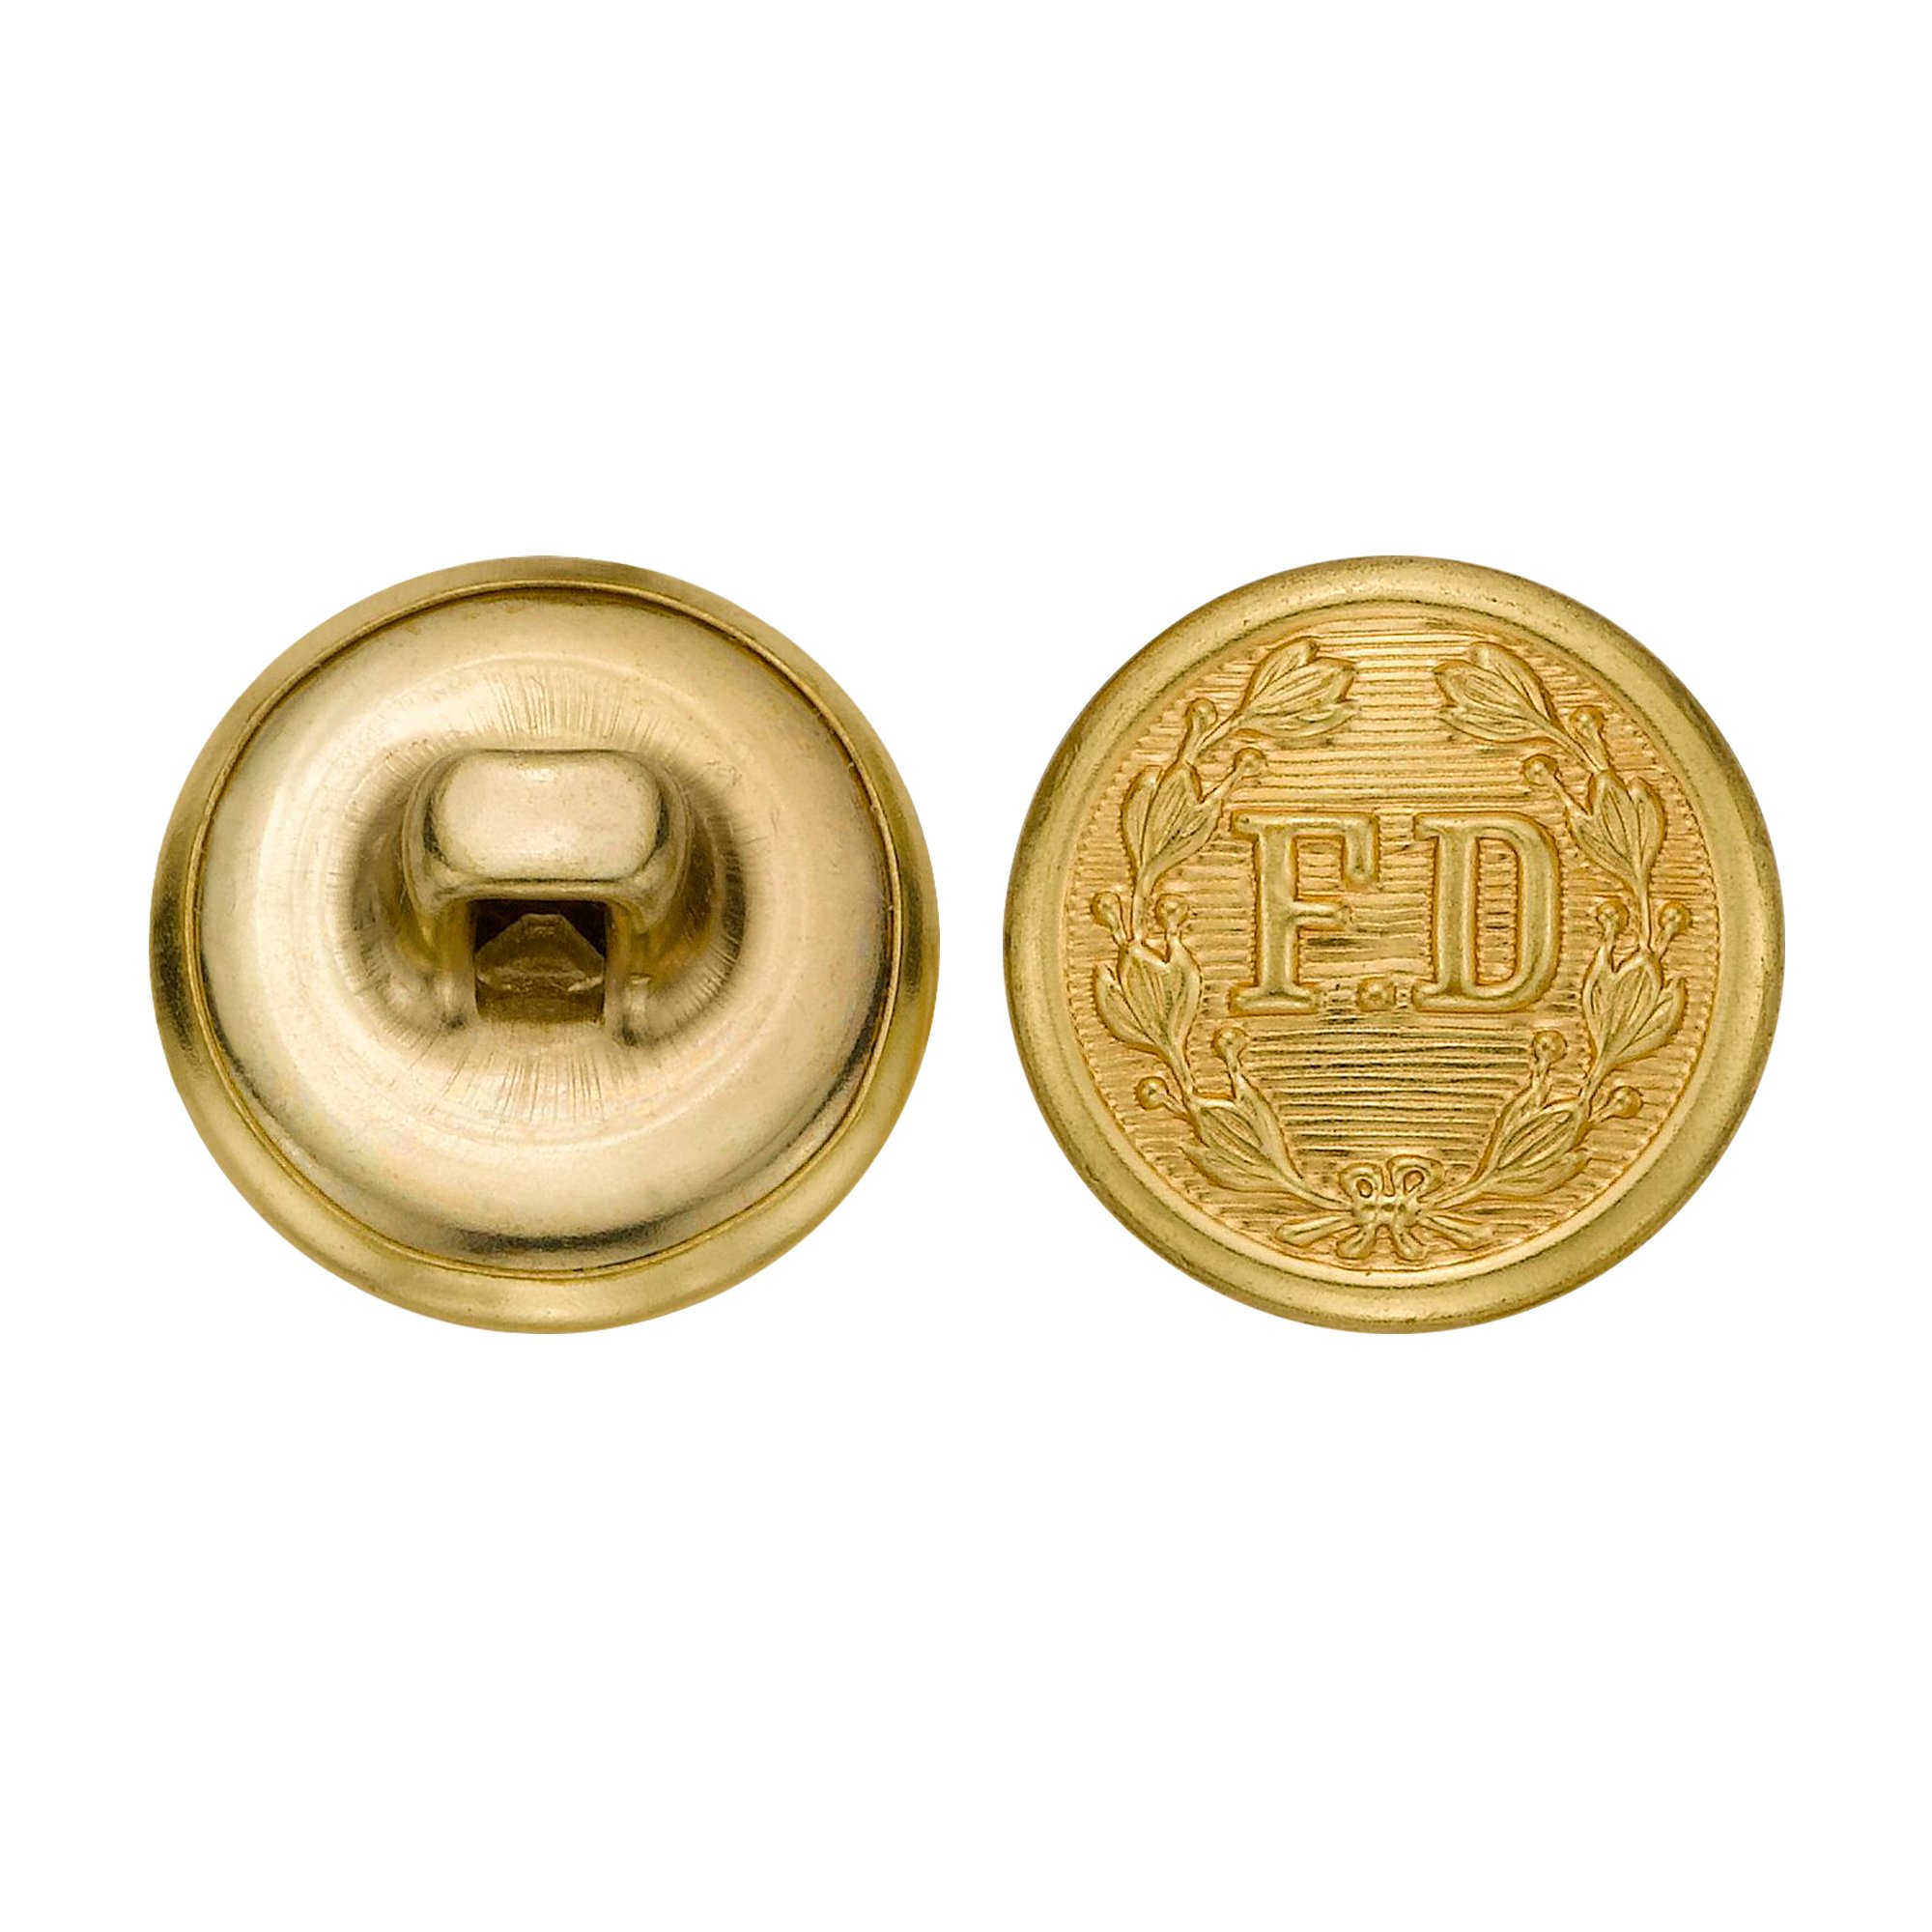 C&C Metal Products 5259 Fire Department Metal Button, Size 24 Ligne, Gold, 72-Pack